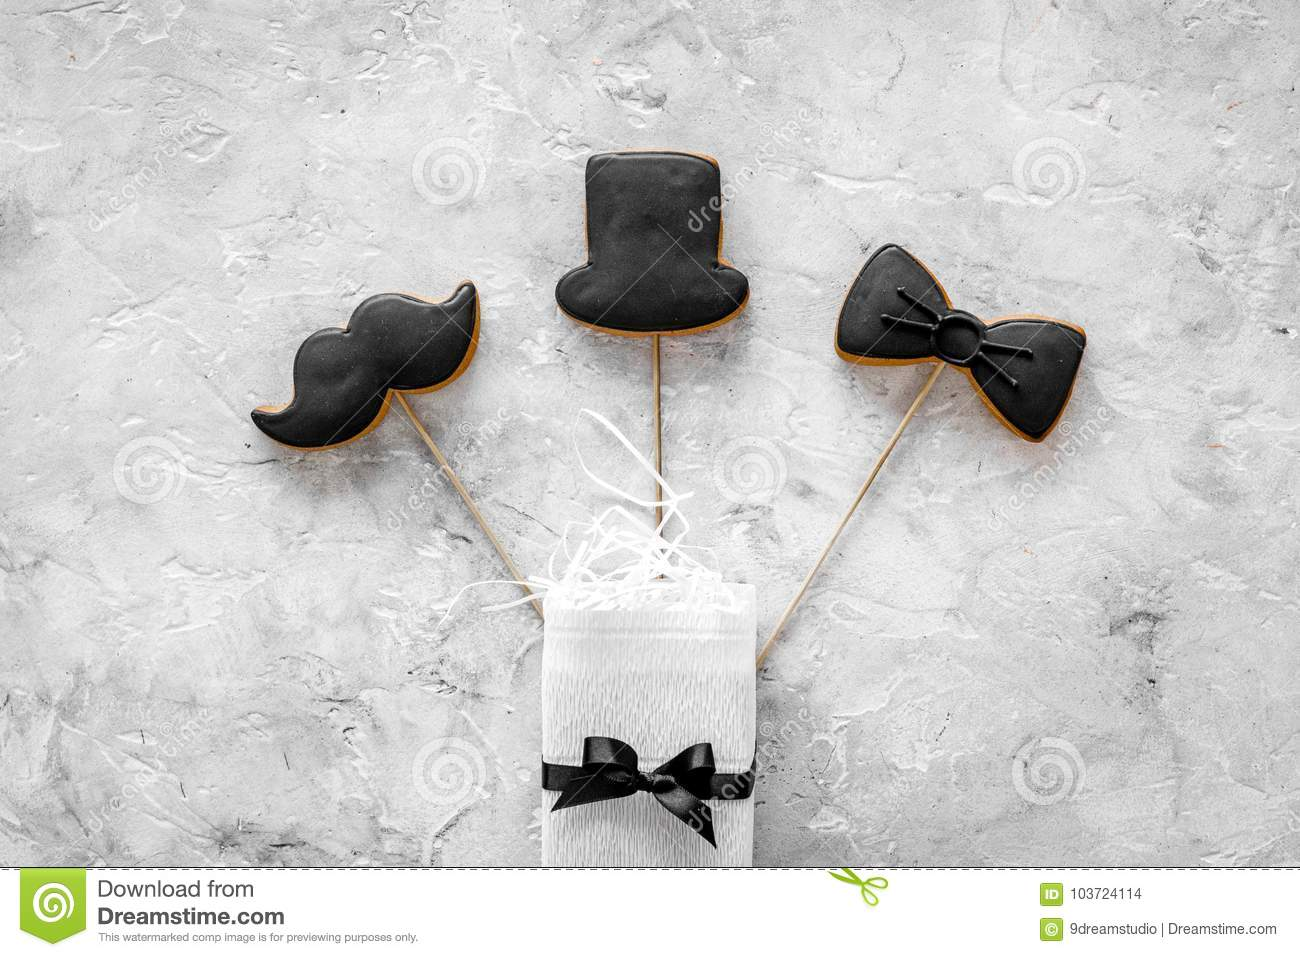 Birthday Gift For Men Wrapped Box Cookies In Shape Of Black Tie Mustache Hat Grey Background Top View